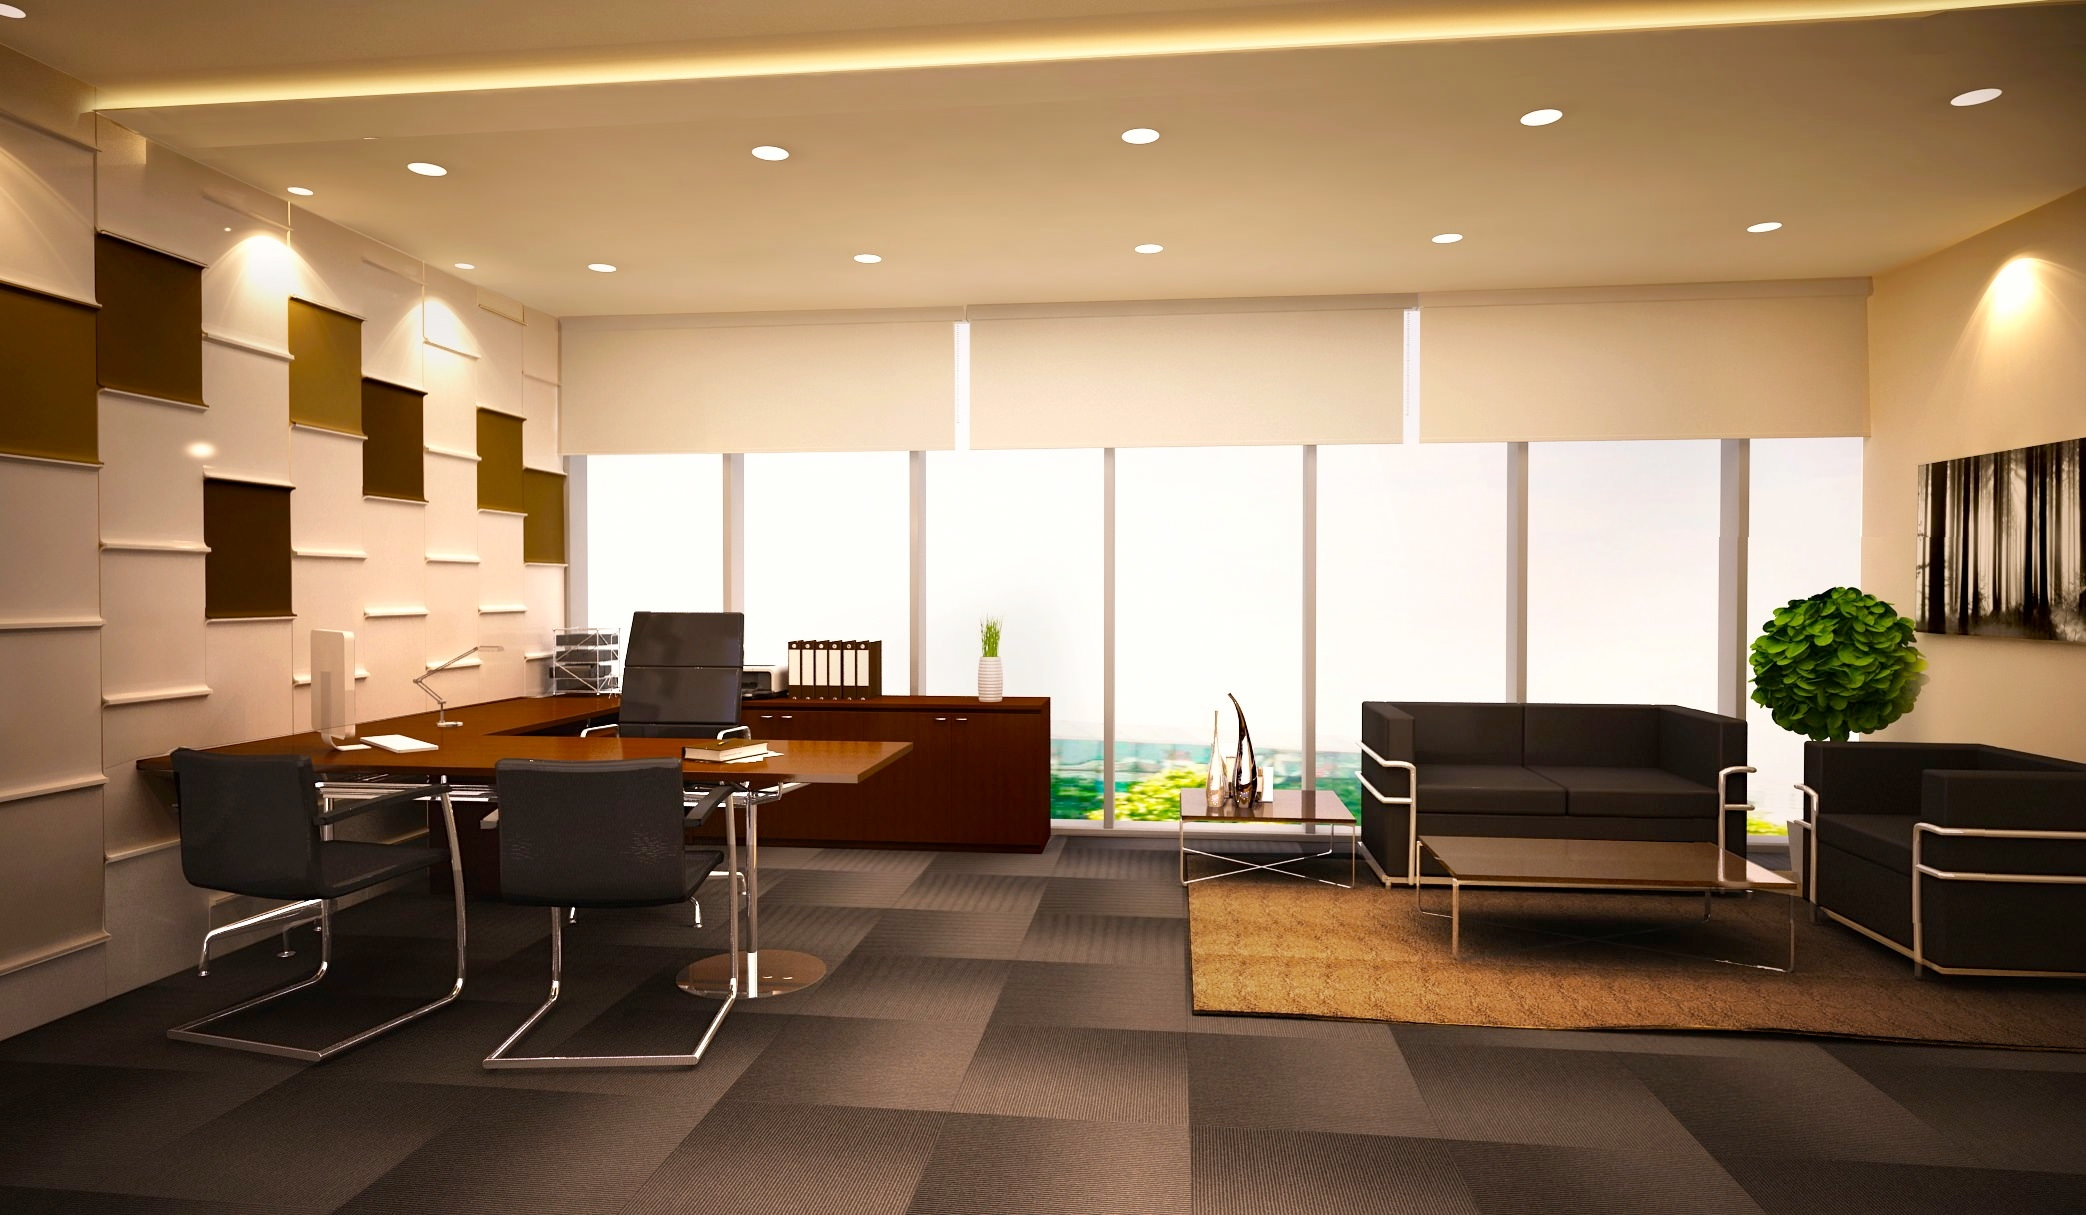 19 minimalist office designs decorating ideas design for Office interior decorating ideas